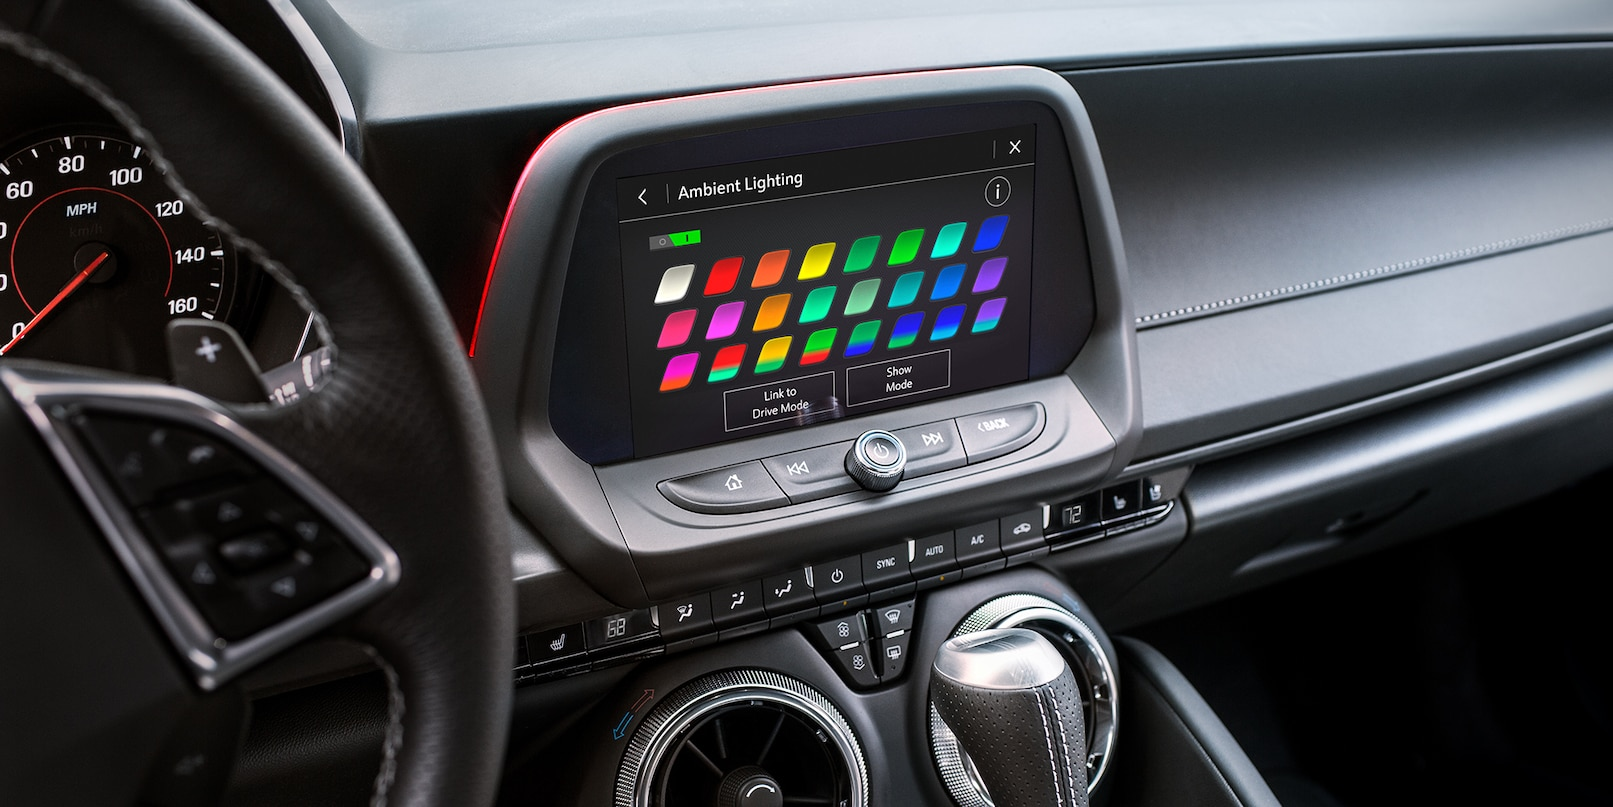 Ambient Lighting in the 2019 Camaro